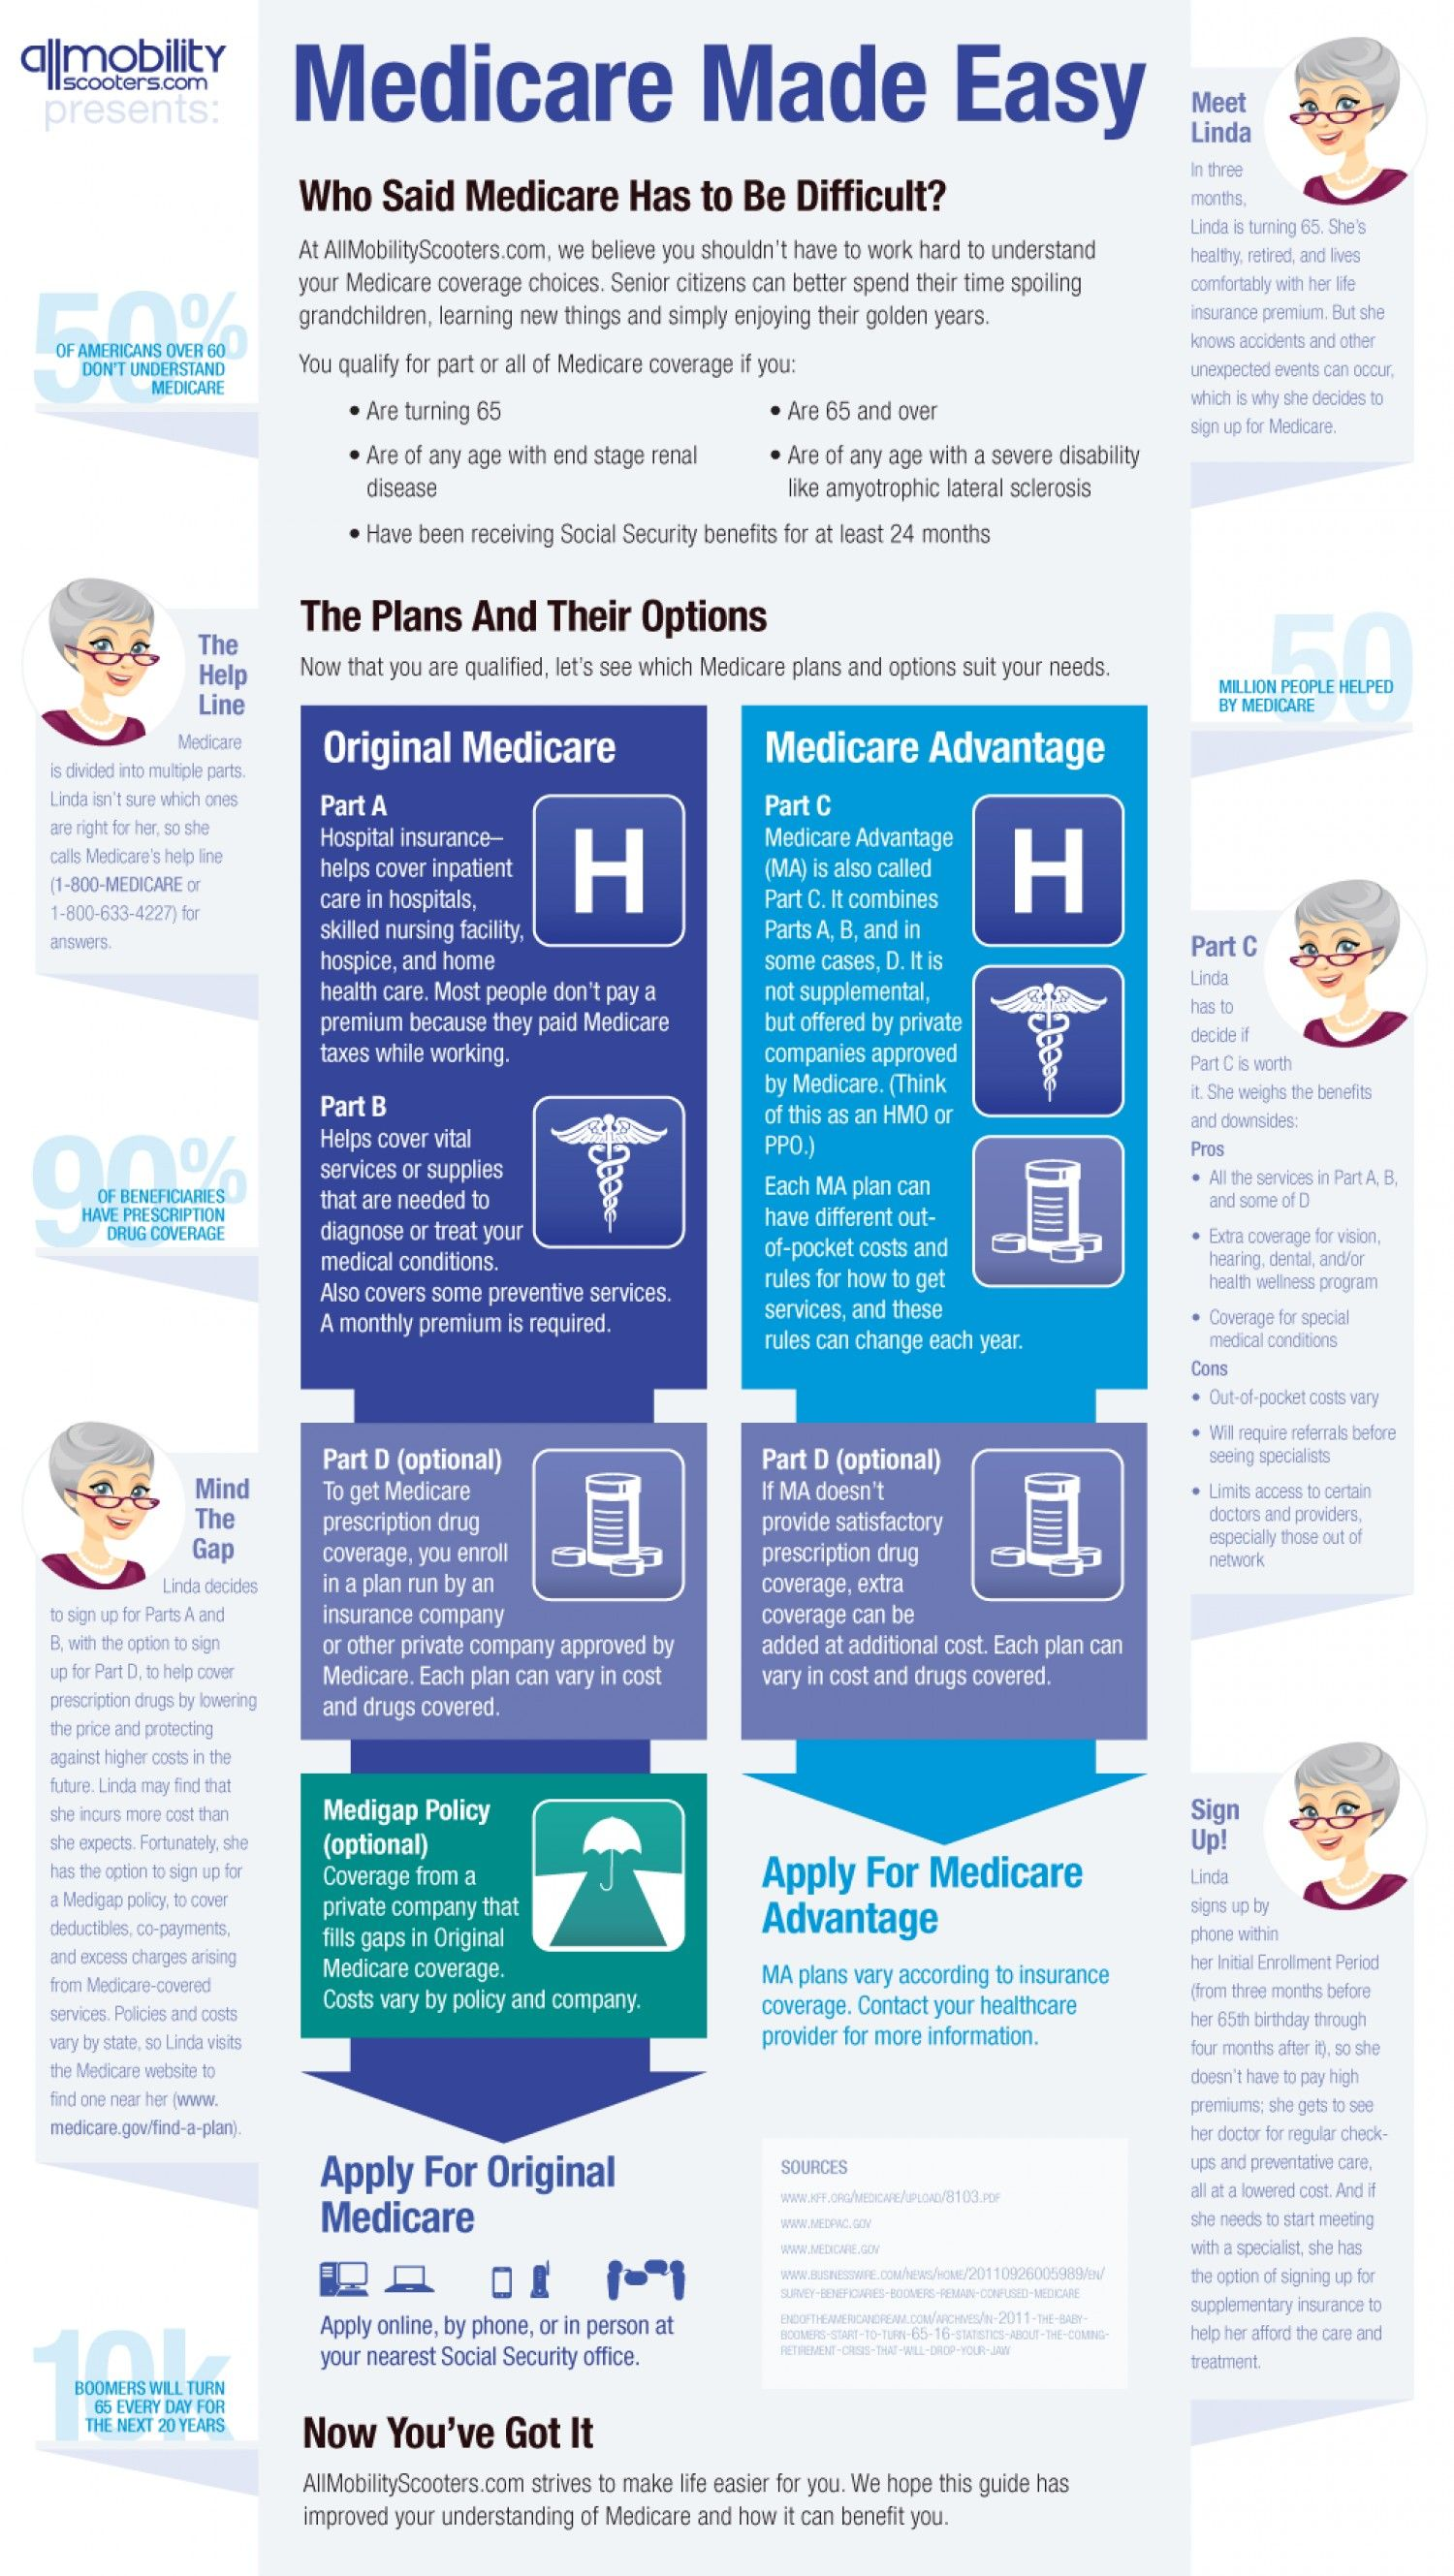 Medicare Made Easy Infographic Medical social work